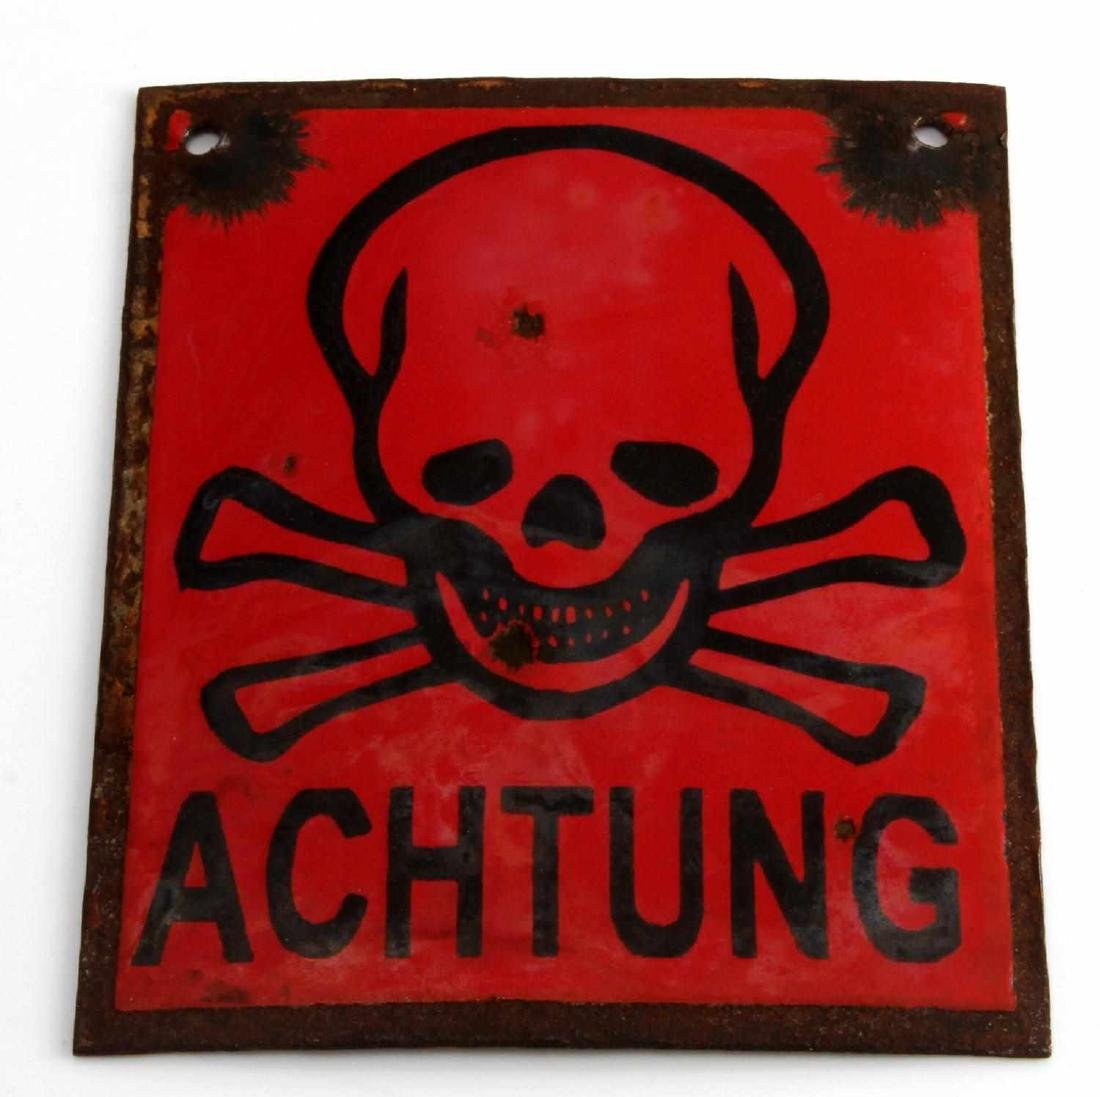 WWII GERMAN 3RD REICH MINE ACHTUNG PORCELAIN SIGN